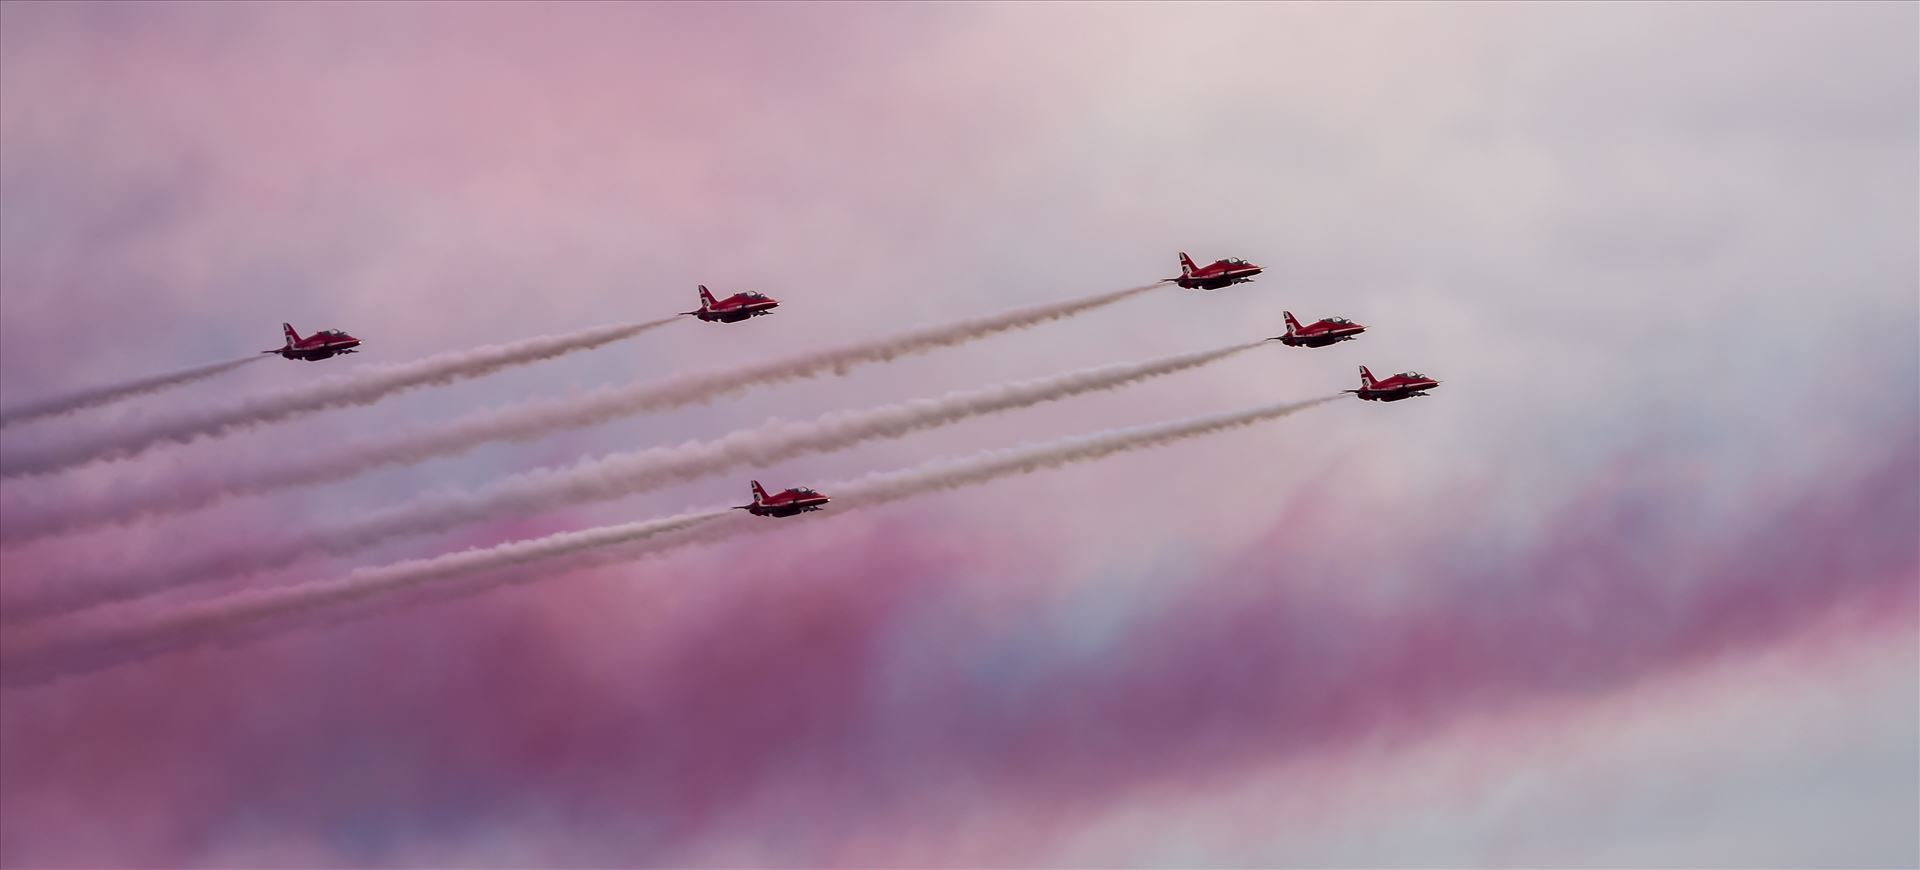 Red Arrows - The Red Arrows taken at the Sunderland air show 2016 by philreay